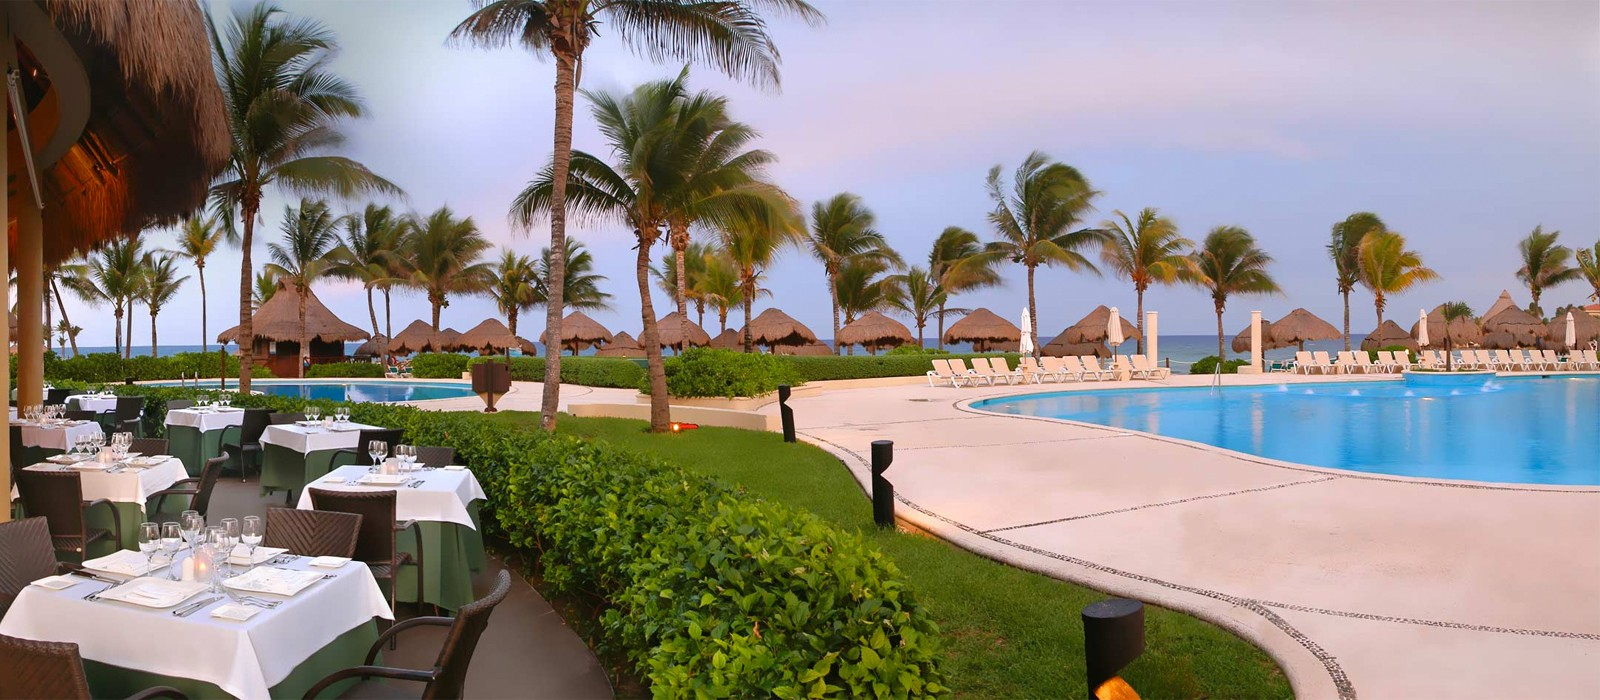 header - Catalonia Yucatan Beach - Luxury Mexico Holiday Packages